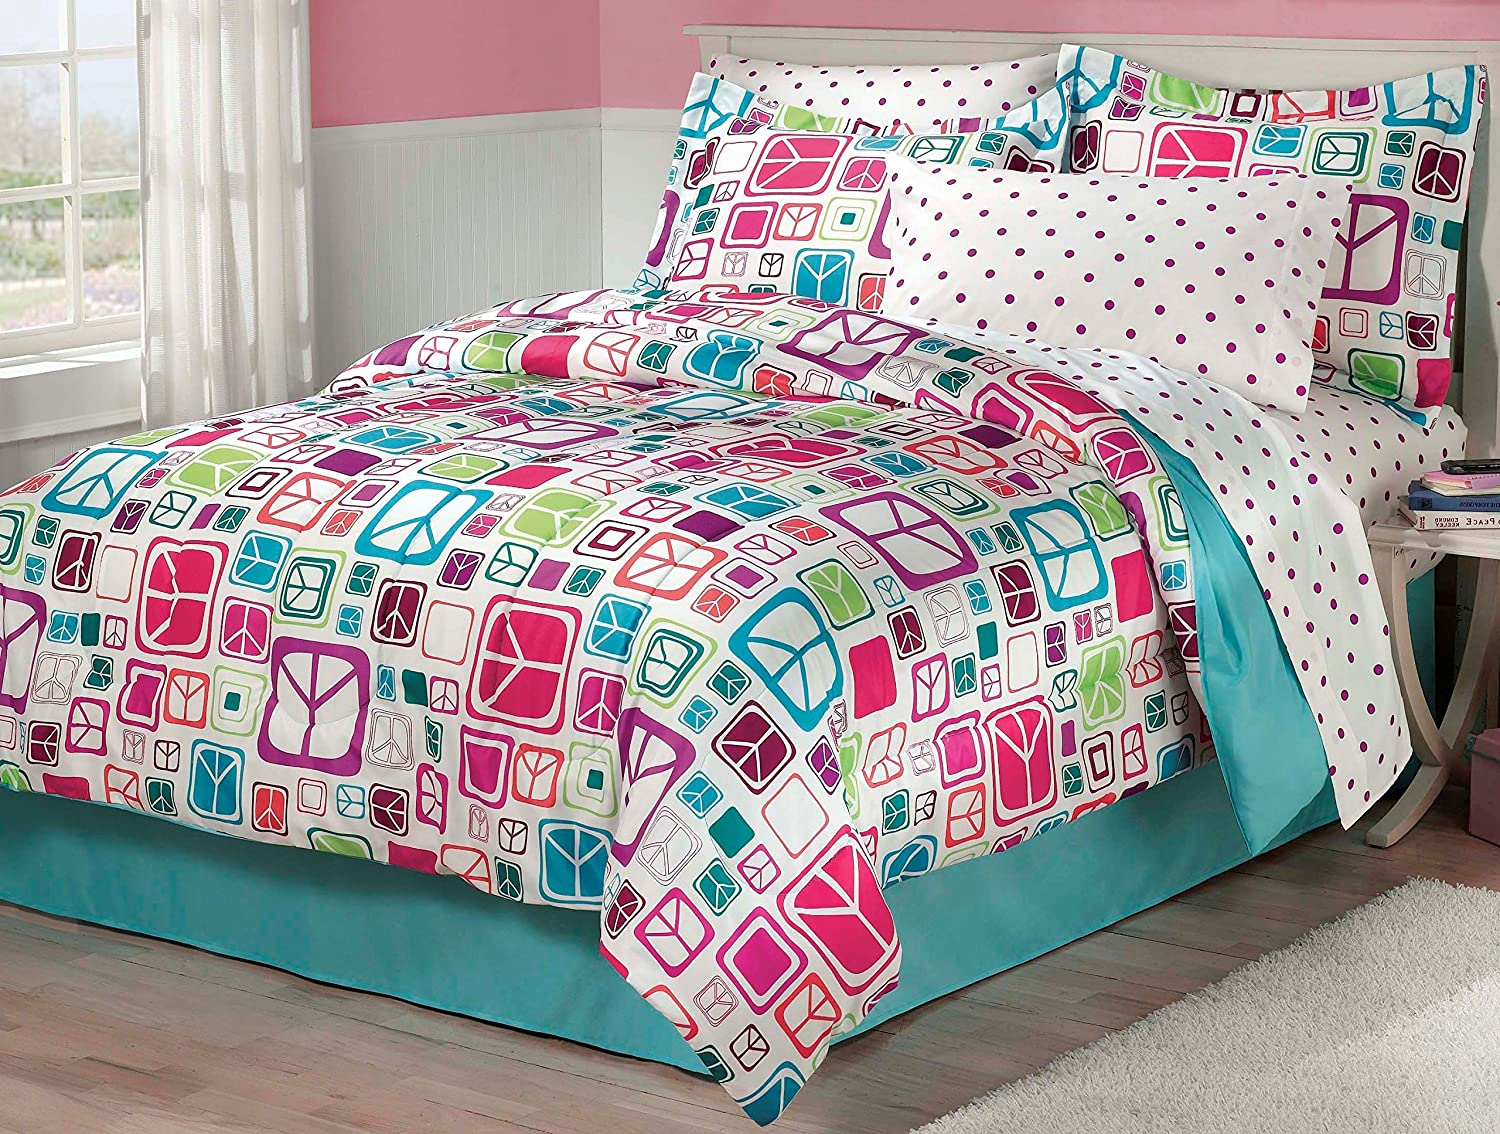 Girls Bedding Sets: My Room Peace Out Girls Comforter Set With Bedskirt, Teal